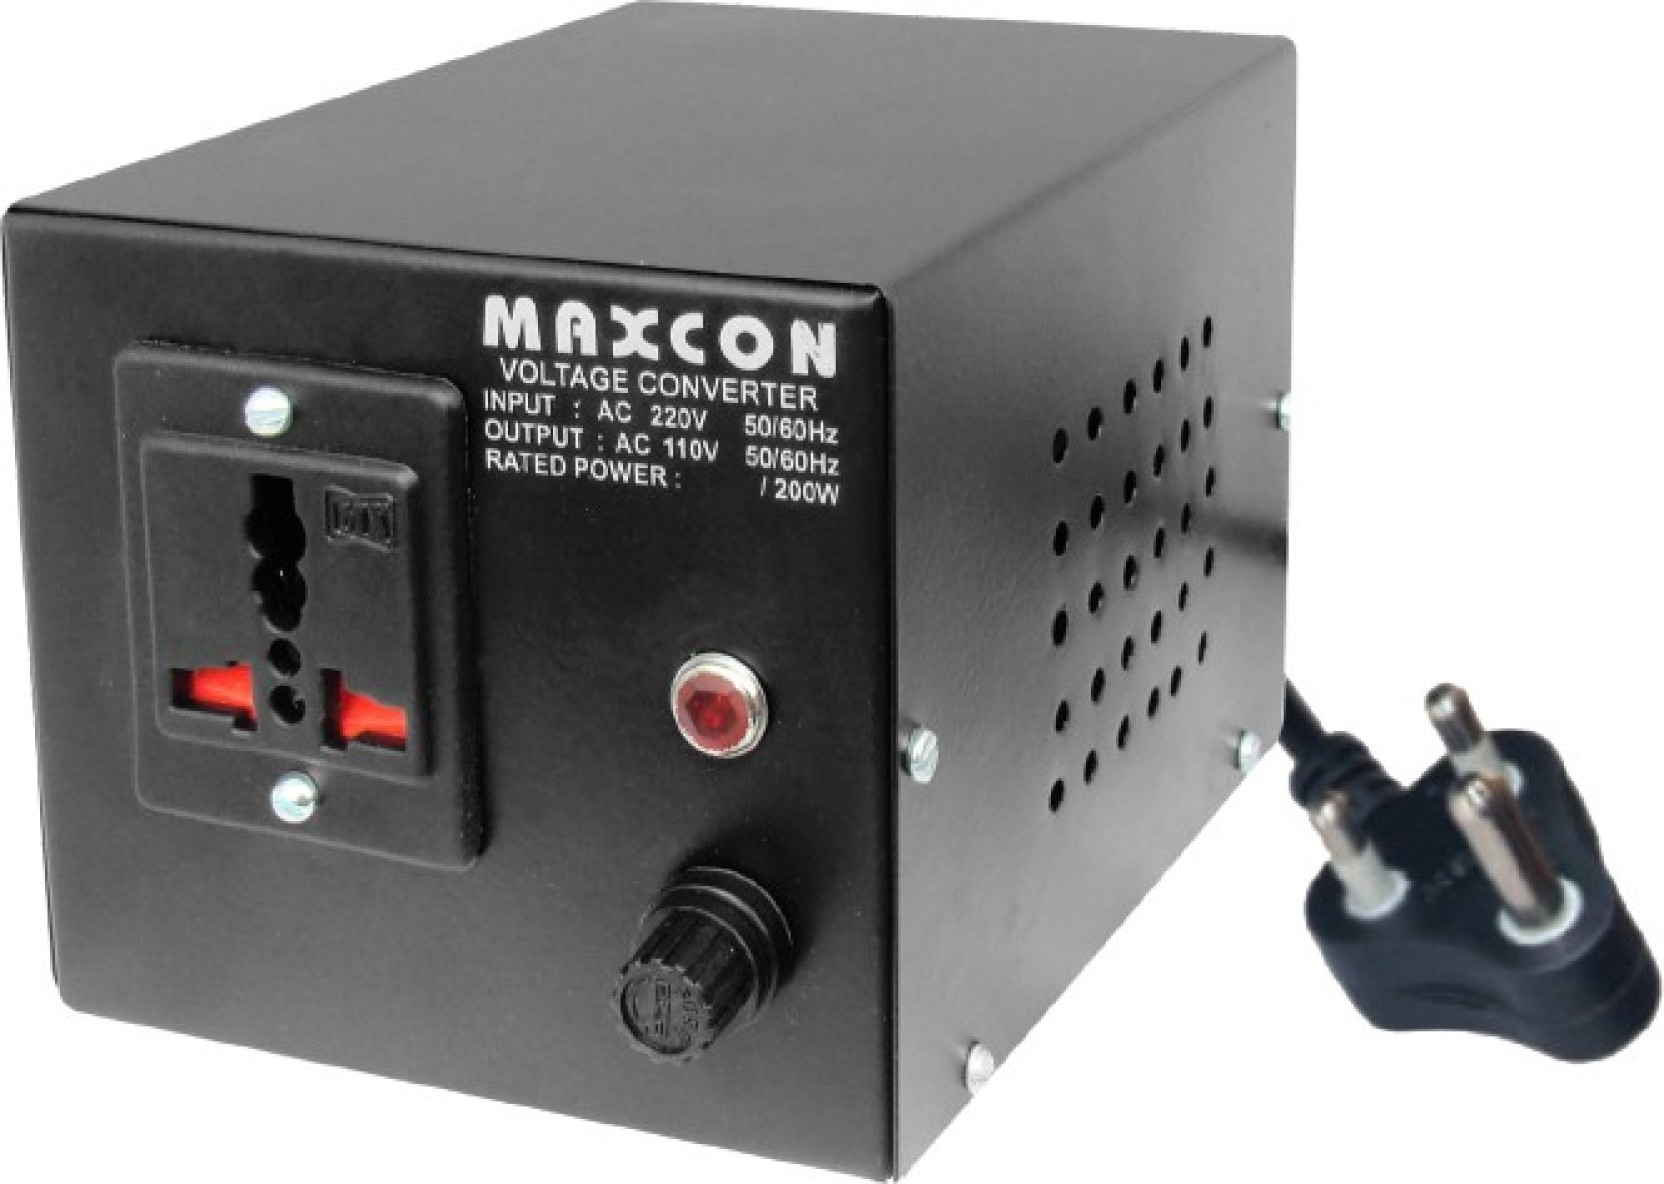 Mx Professional Step Down Voltage Converter W Universal Socket 200 About 5000 Watt Transformer Up 110v 220v Watts 220 Add To Cart